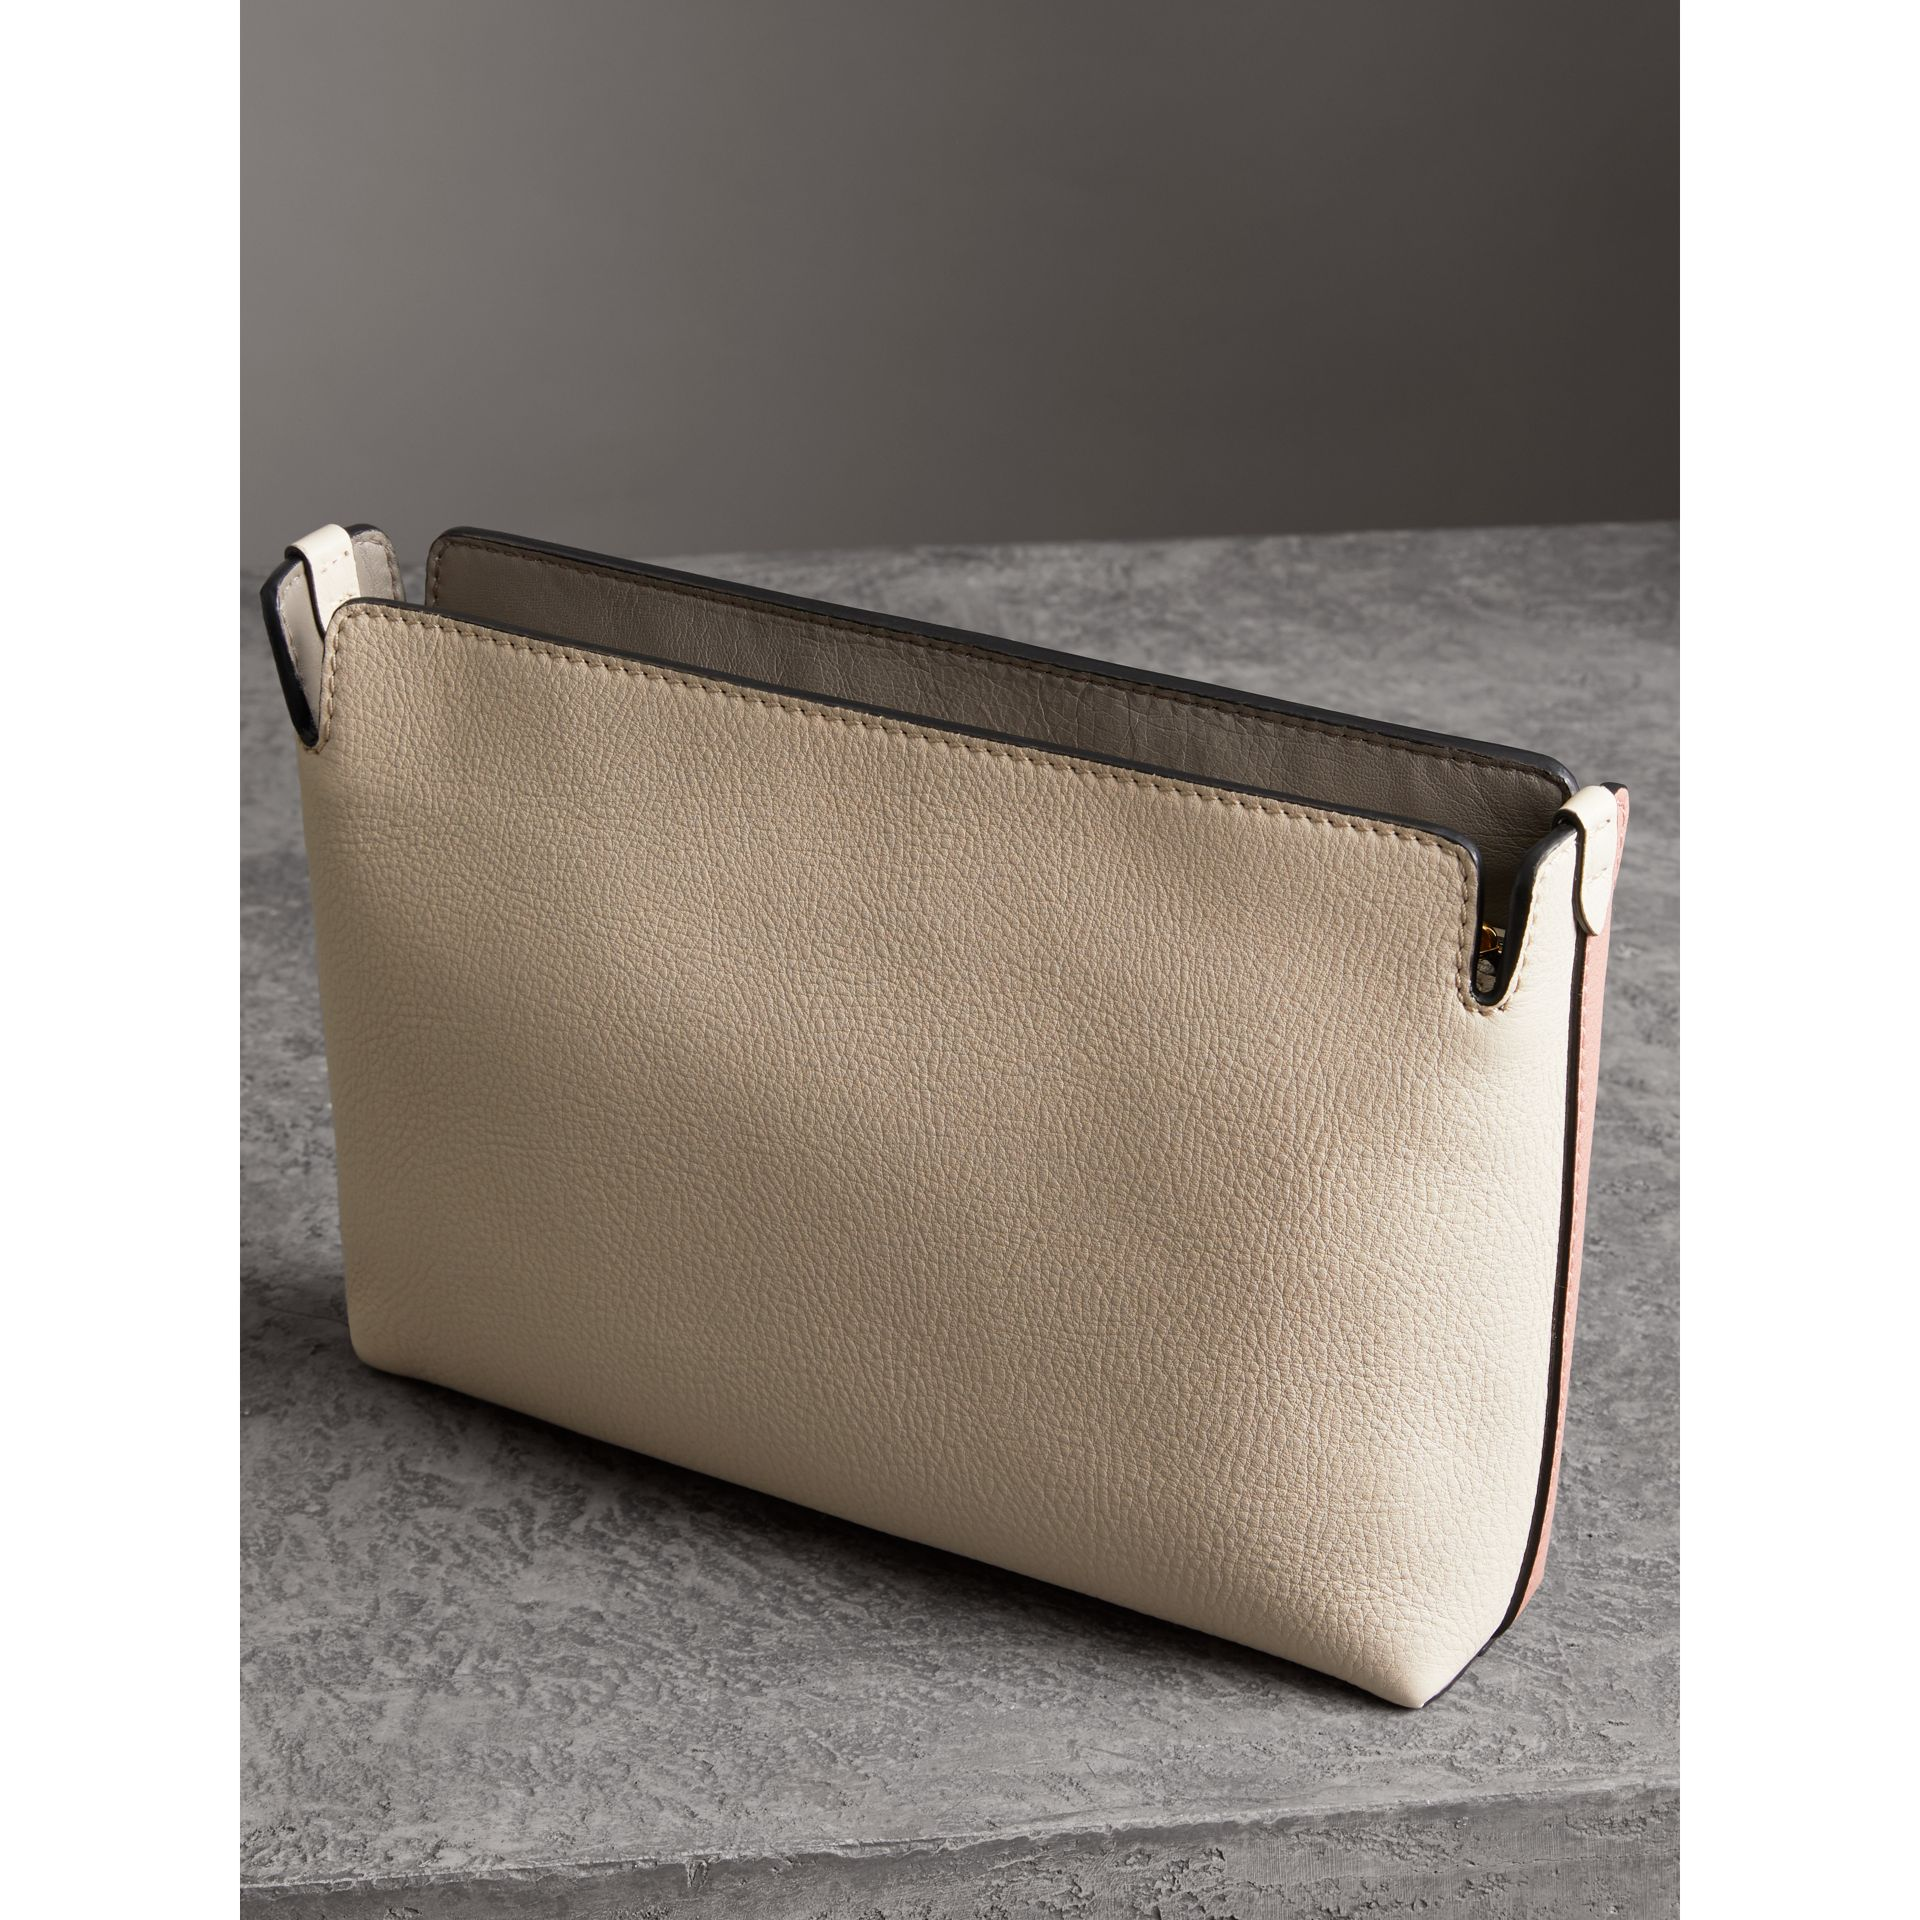 Medium Tri-tone Leather Clutch in Dusty Rose/limestone - Women | Burberry - gallery image 4